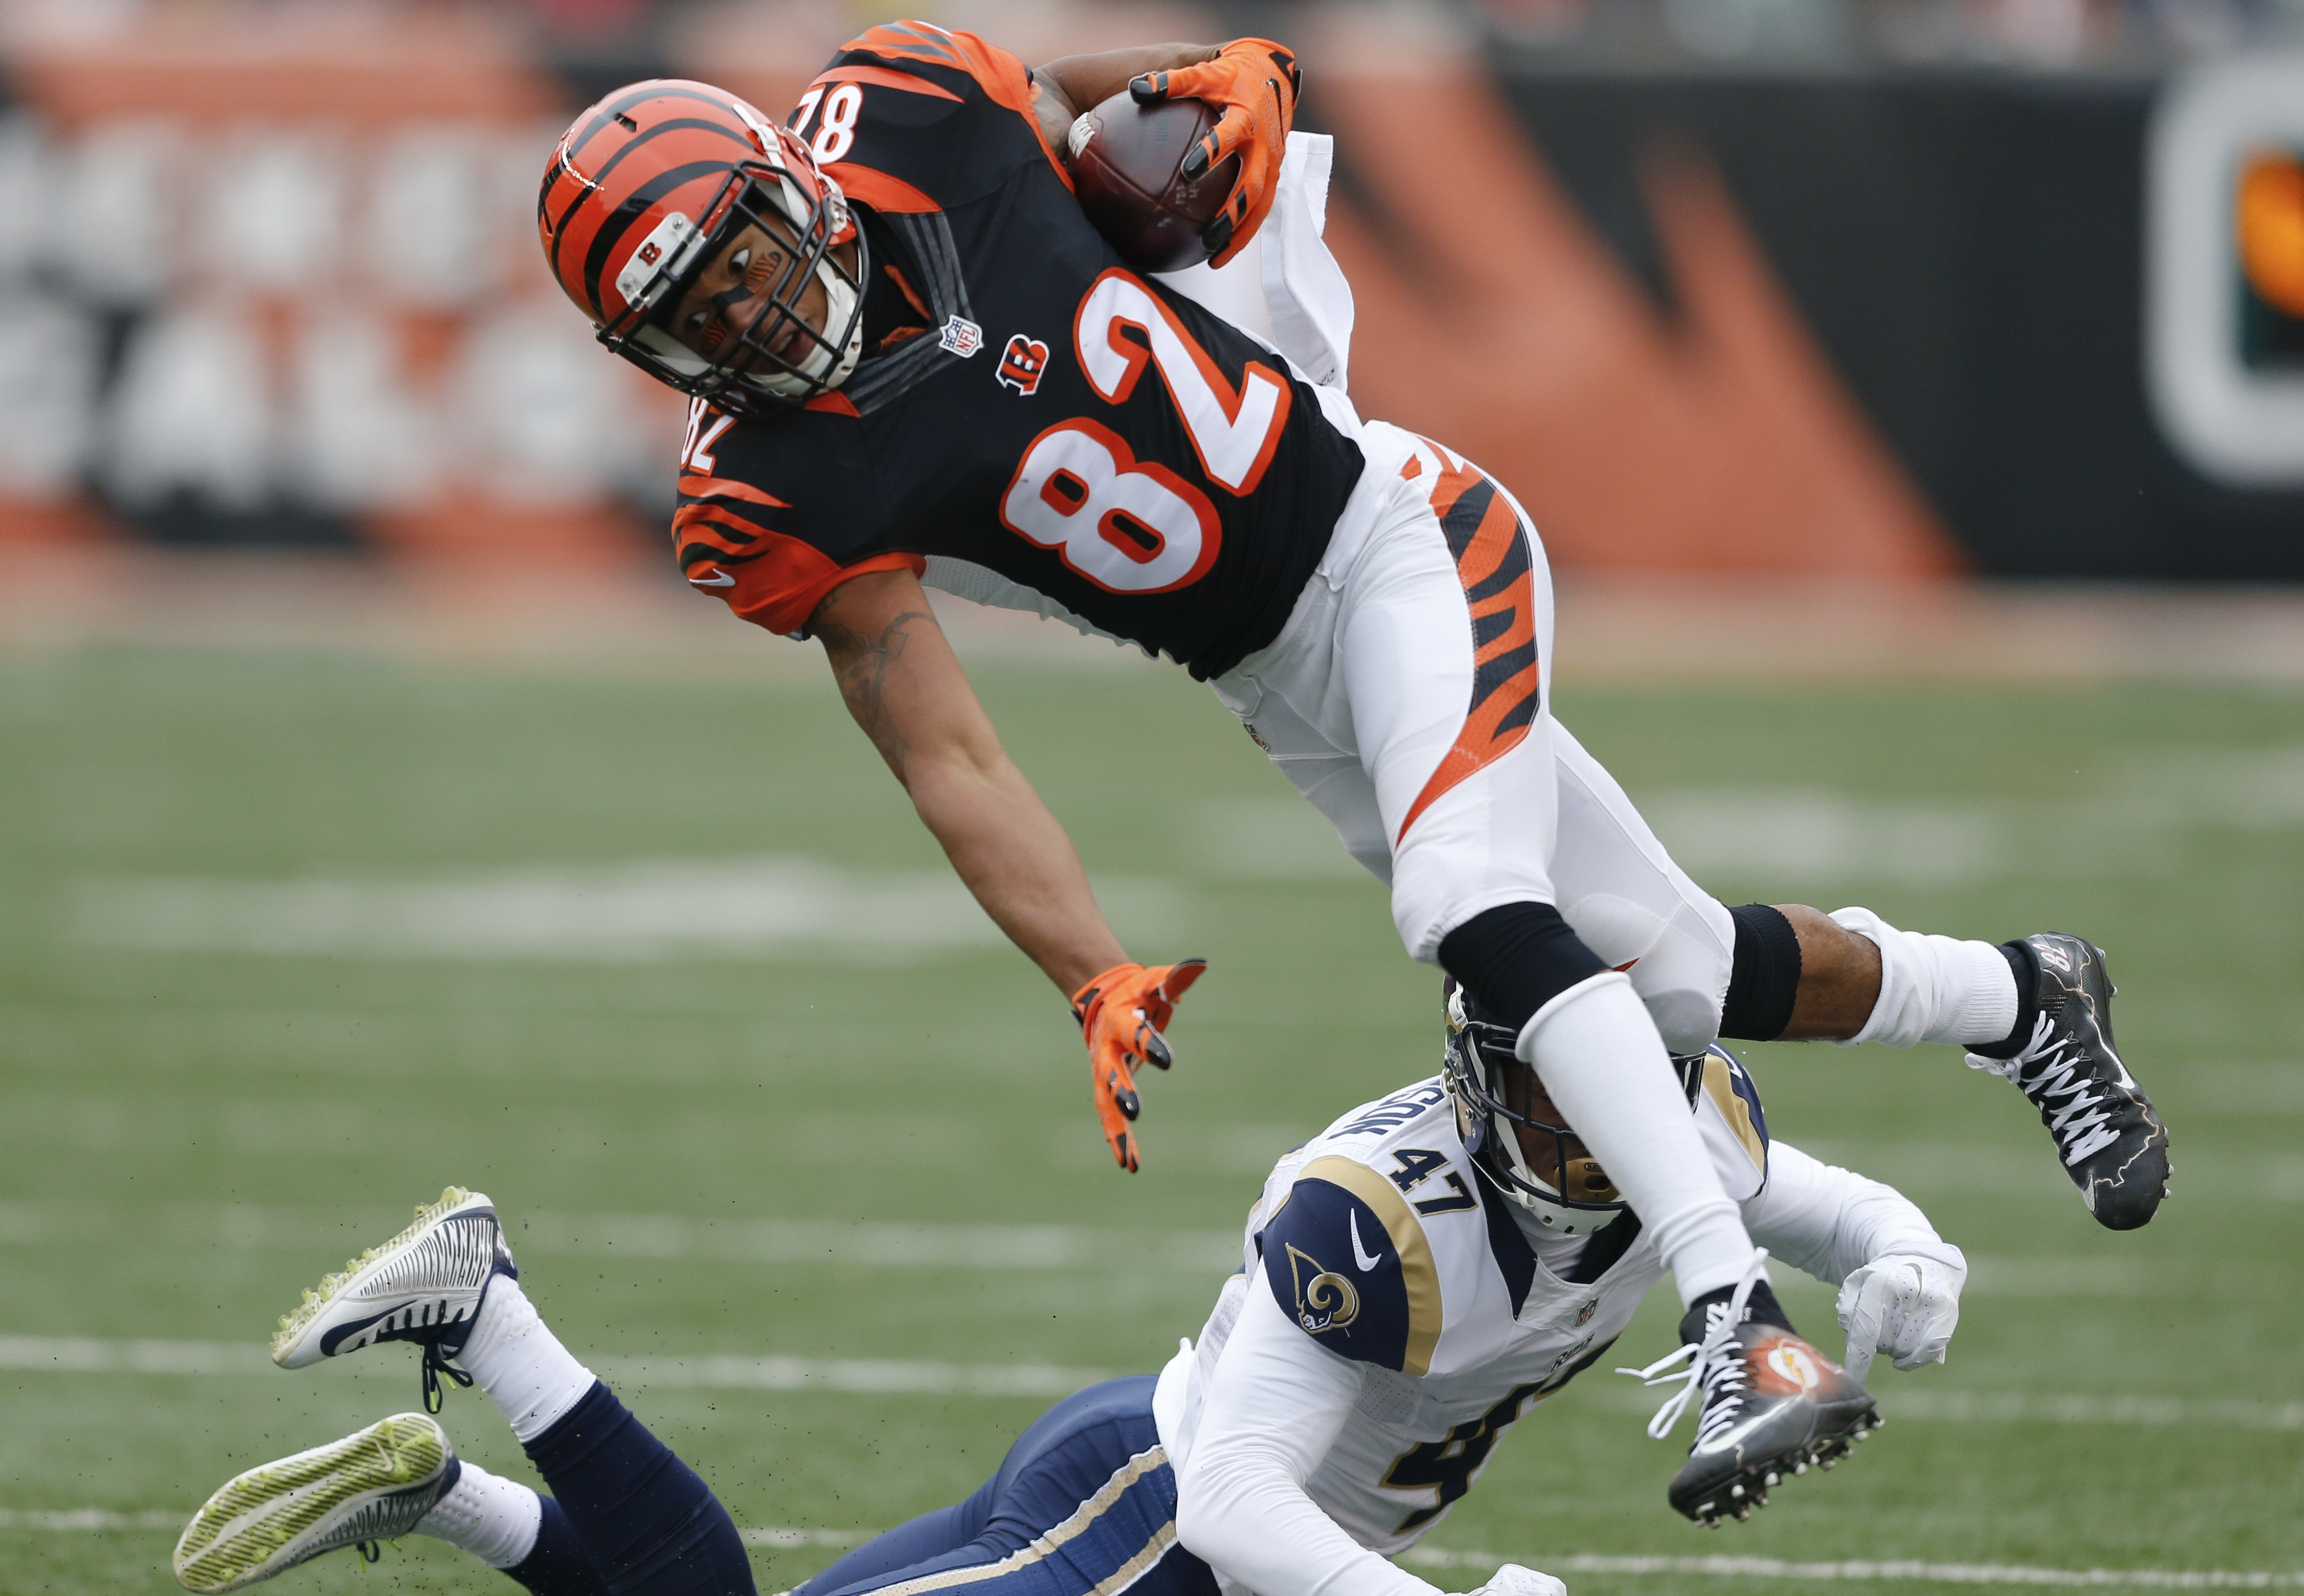 FILE - In this Nov. 29, 2015, file photo, Cincinnati Bengals wide receiver Marvin Jones (82) leaps over St. Louis Rams cornerback Marcus Roberson (47) in the first half of an NFL football game, in Cincinnati. The Detroit Lions have agreed to a five-year c